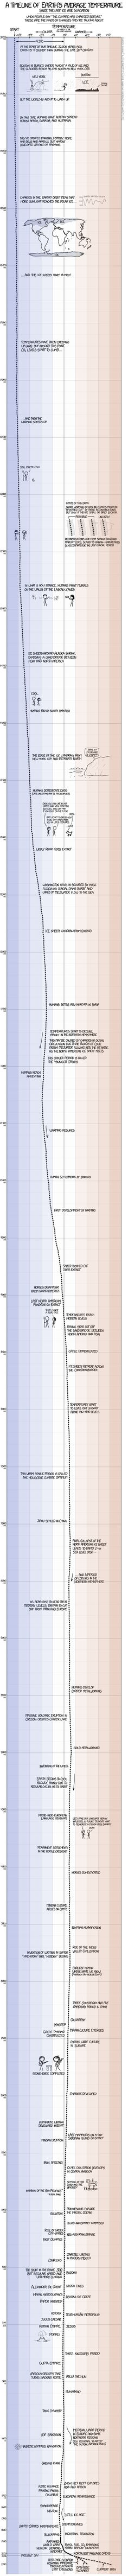 A timeline of Earth's average temperature: in comic form: A new illustration from cartoonist Randall Munroe is equal parts fascinating and terrifying...